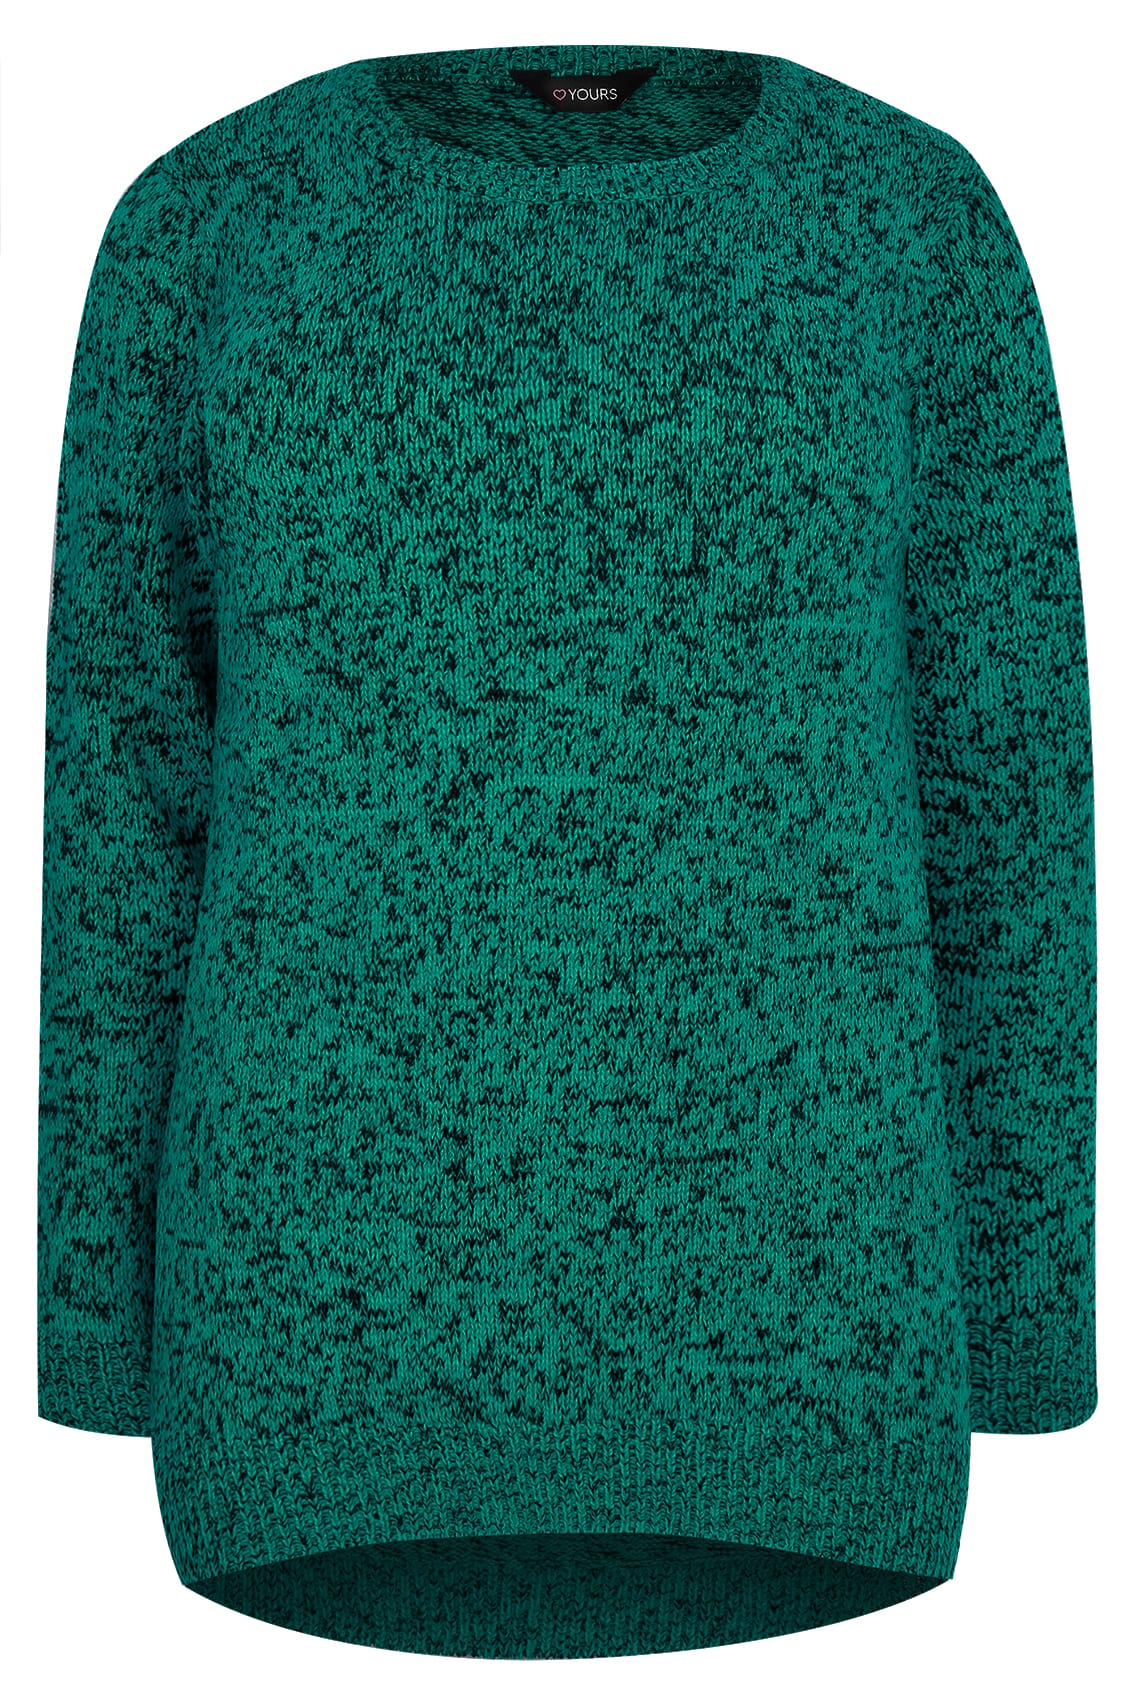 Dark Green Textured Jumper With Dipped Hem Plus Size 16 To 36